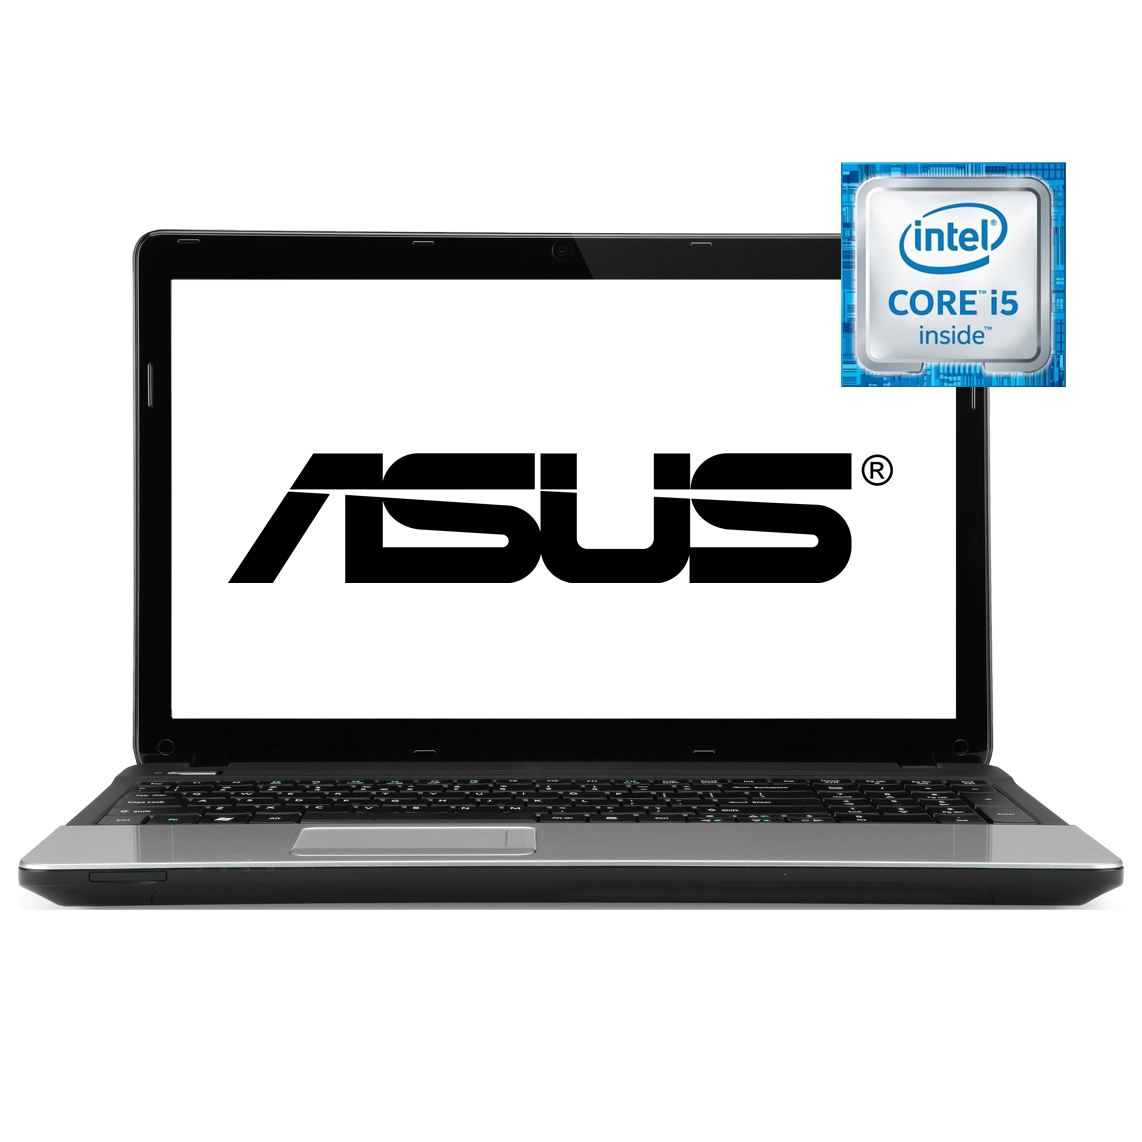 ASUS - 16 inch Core i5 2nd Gen